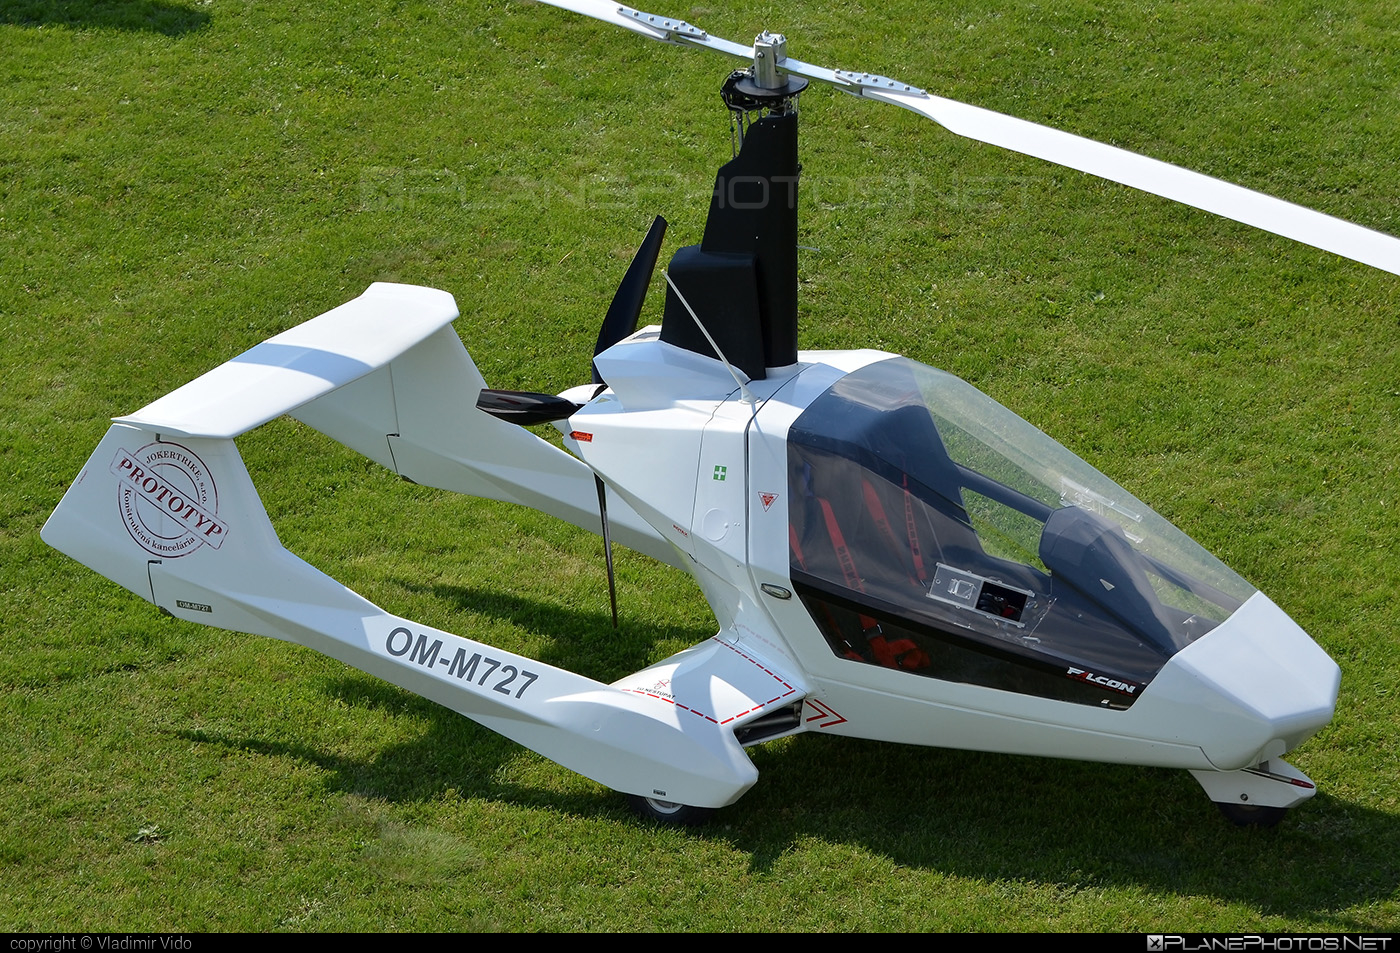 JOKERTRIKE Falcon - OM-M727 operated by Private operator #falcongyrocopter #jokergyrocopter #jokertrike #jokertrikefalcon